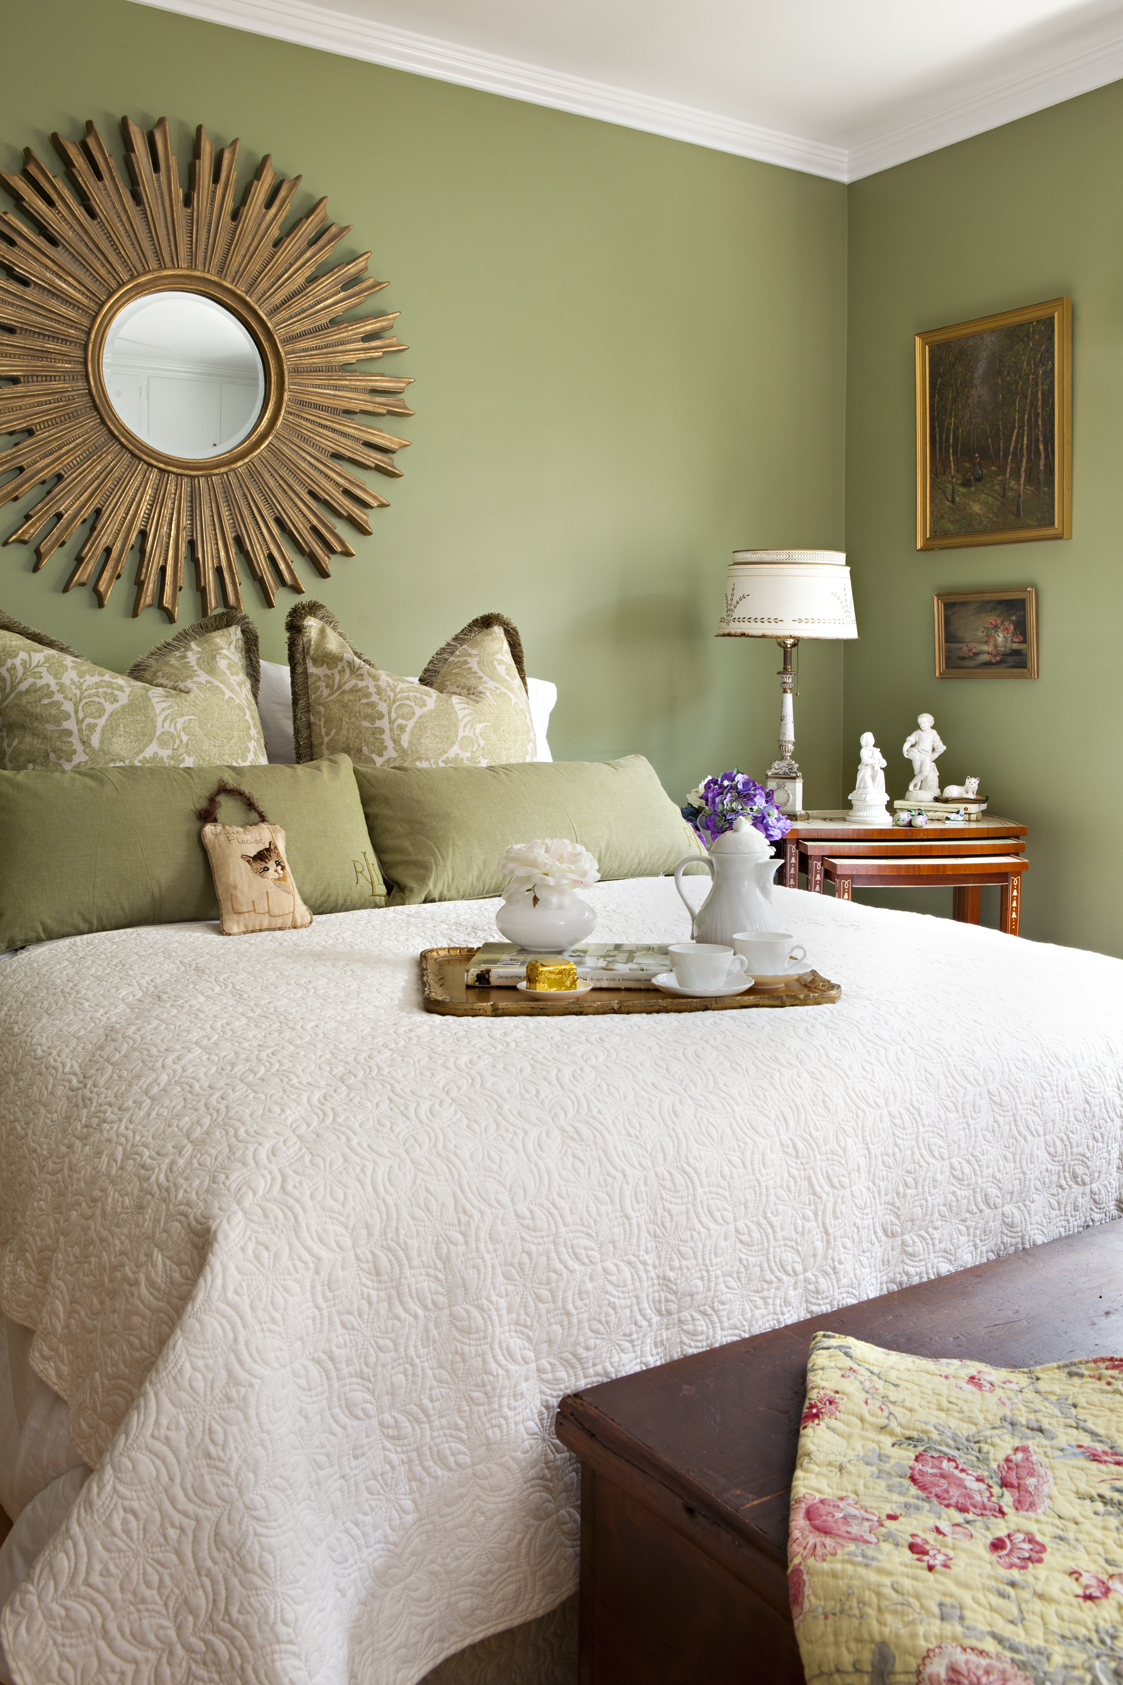 3 Ways to Welcome Spring into Your Bedroom Decor